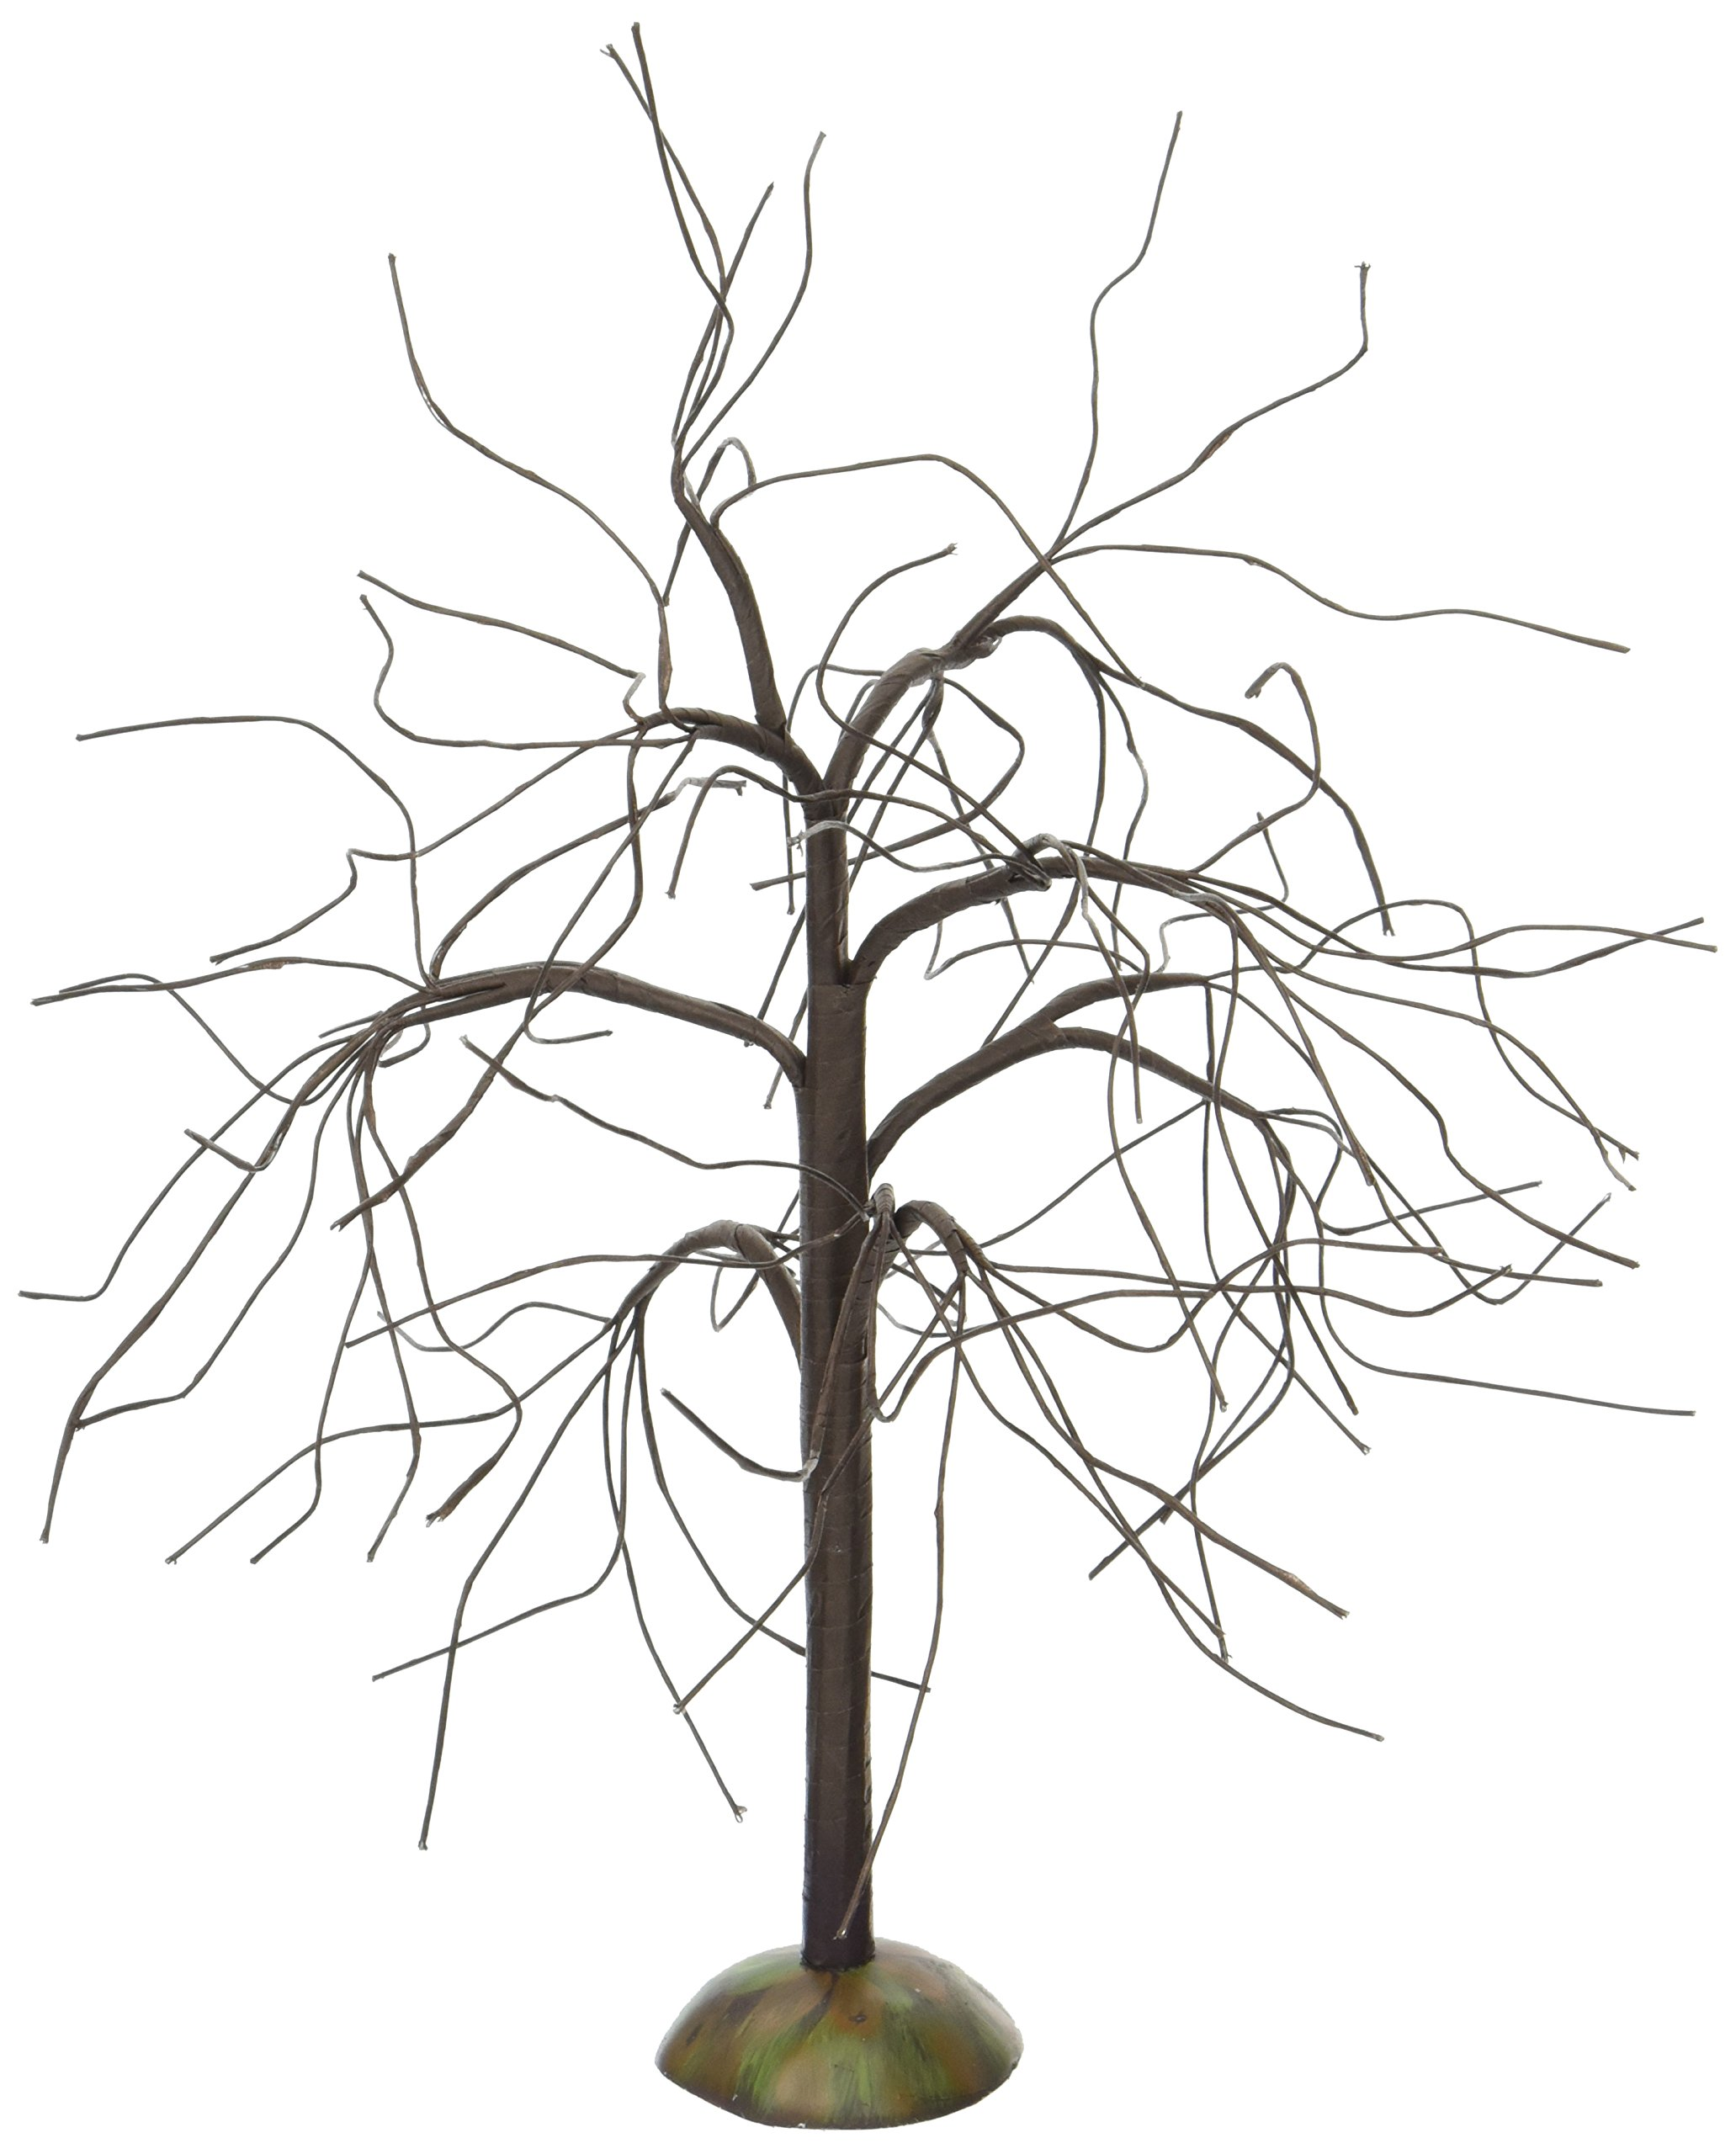 Department 56 Accessories for Villages Halloween Creepy Craggy Tree